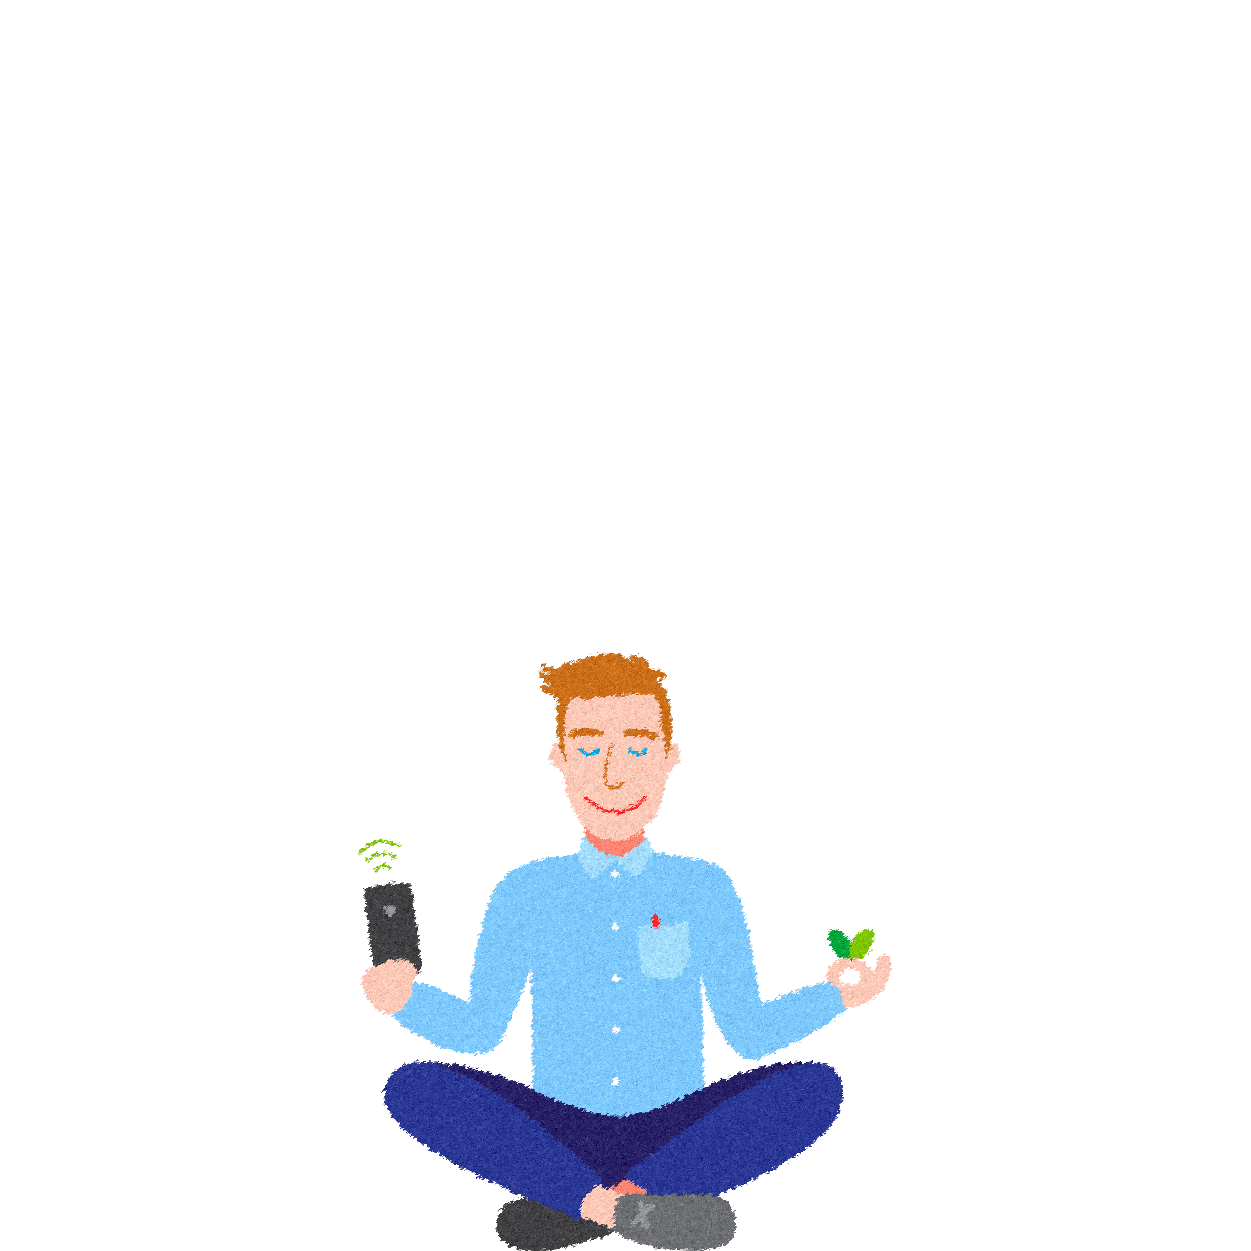 CorporateClientsPage_illustrations-04.png